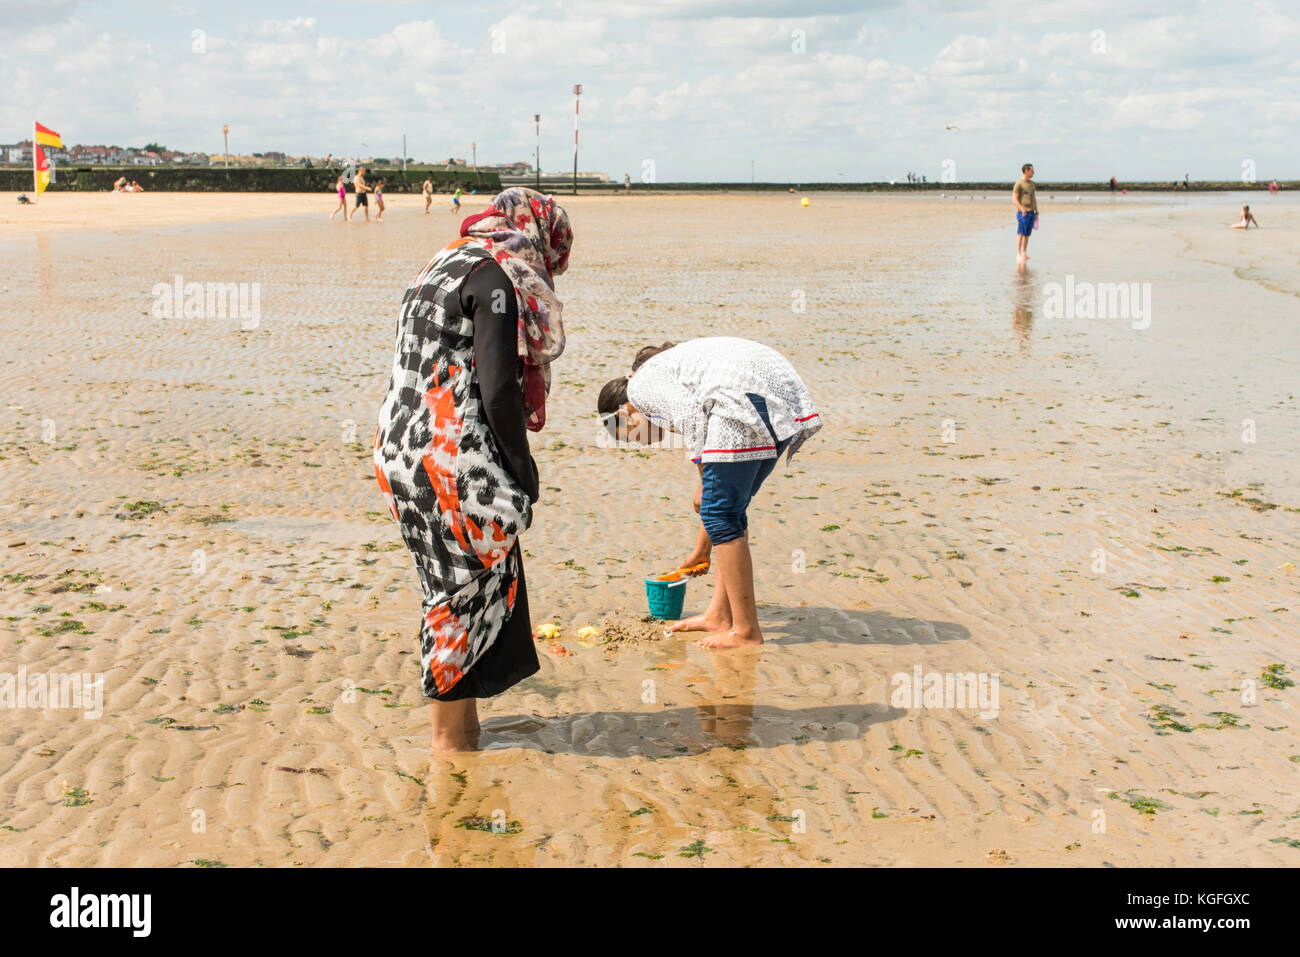 Asian families enjoying a day on the beach at Margate, Kent. - Stock Image